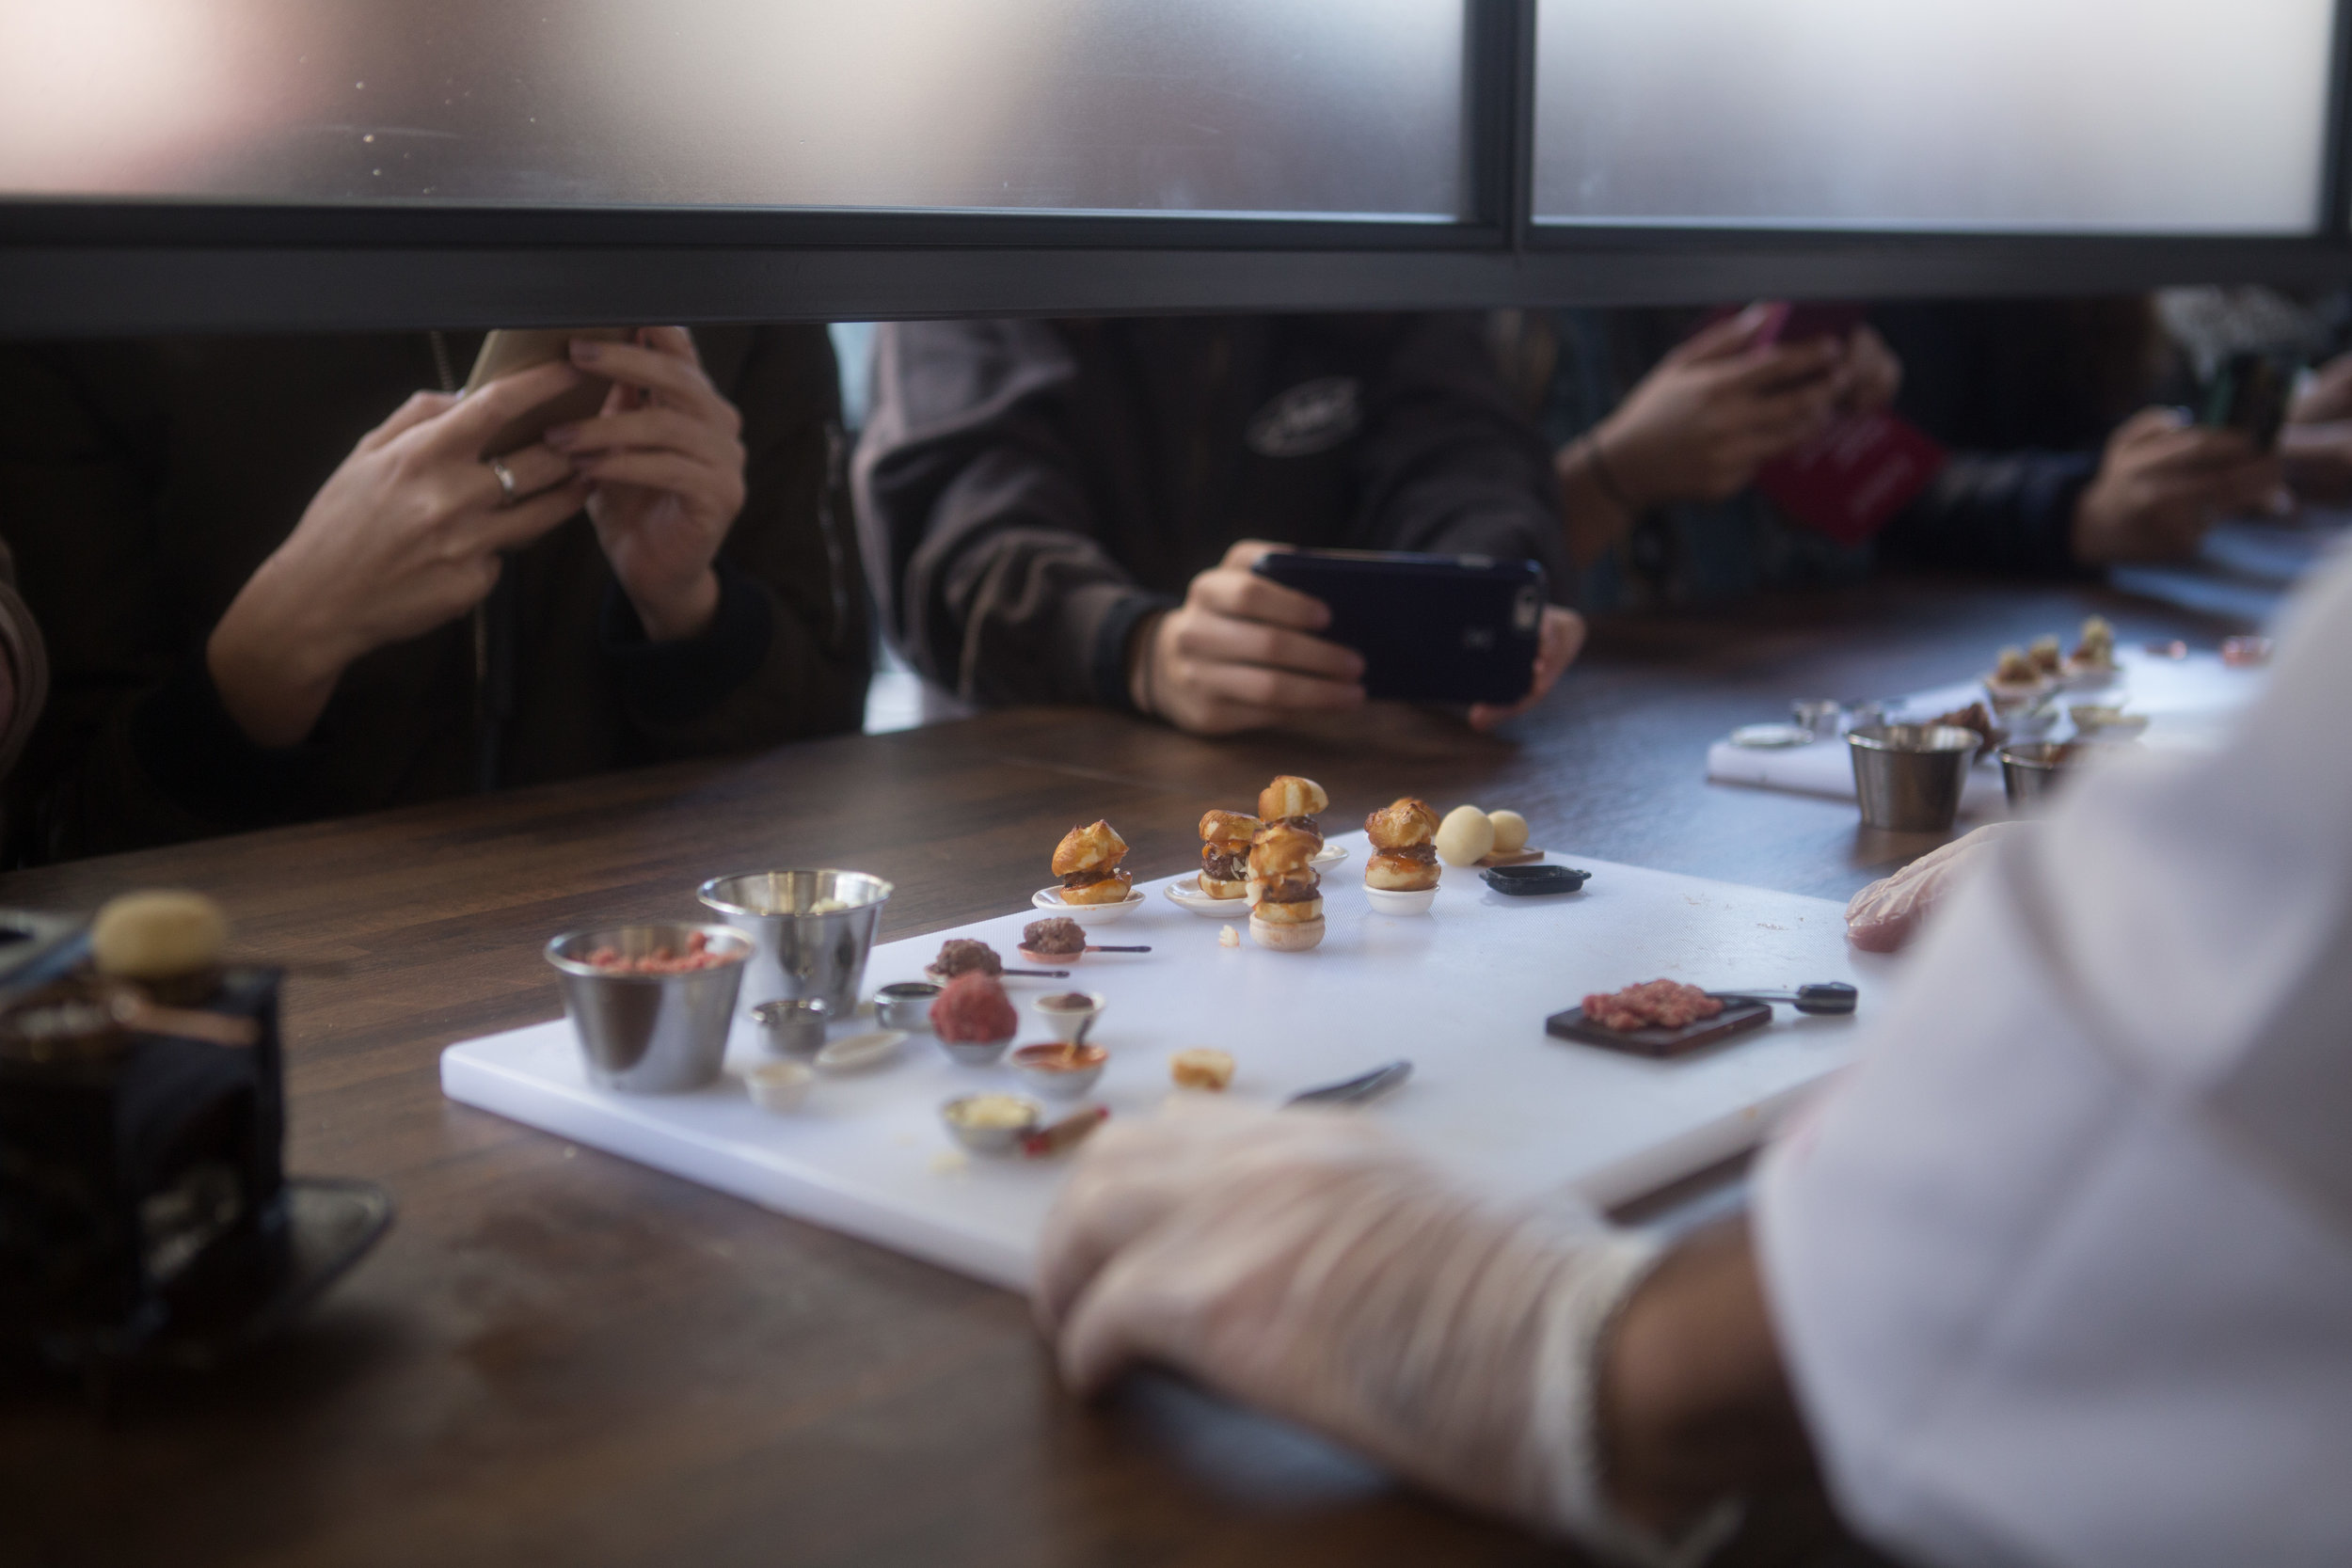 While people waited in line to order their tiny dishes, they could watch our chefs do tiny food demonstrations using real ingredients and two functioning mini stoves.